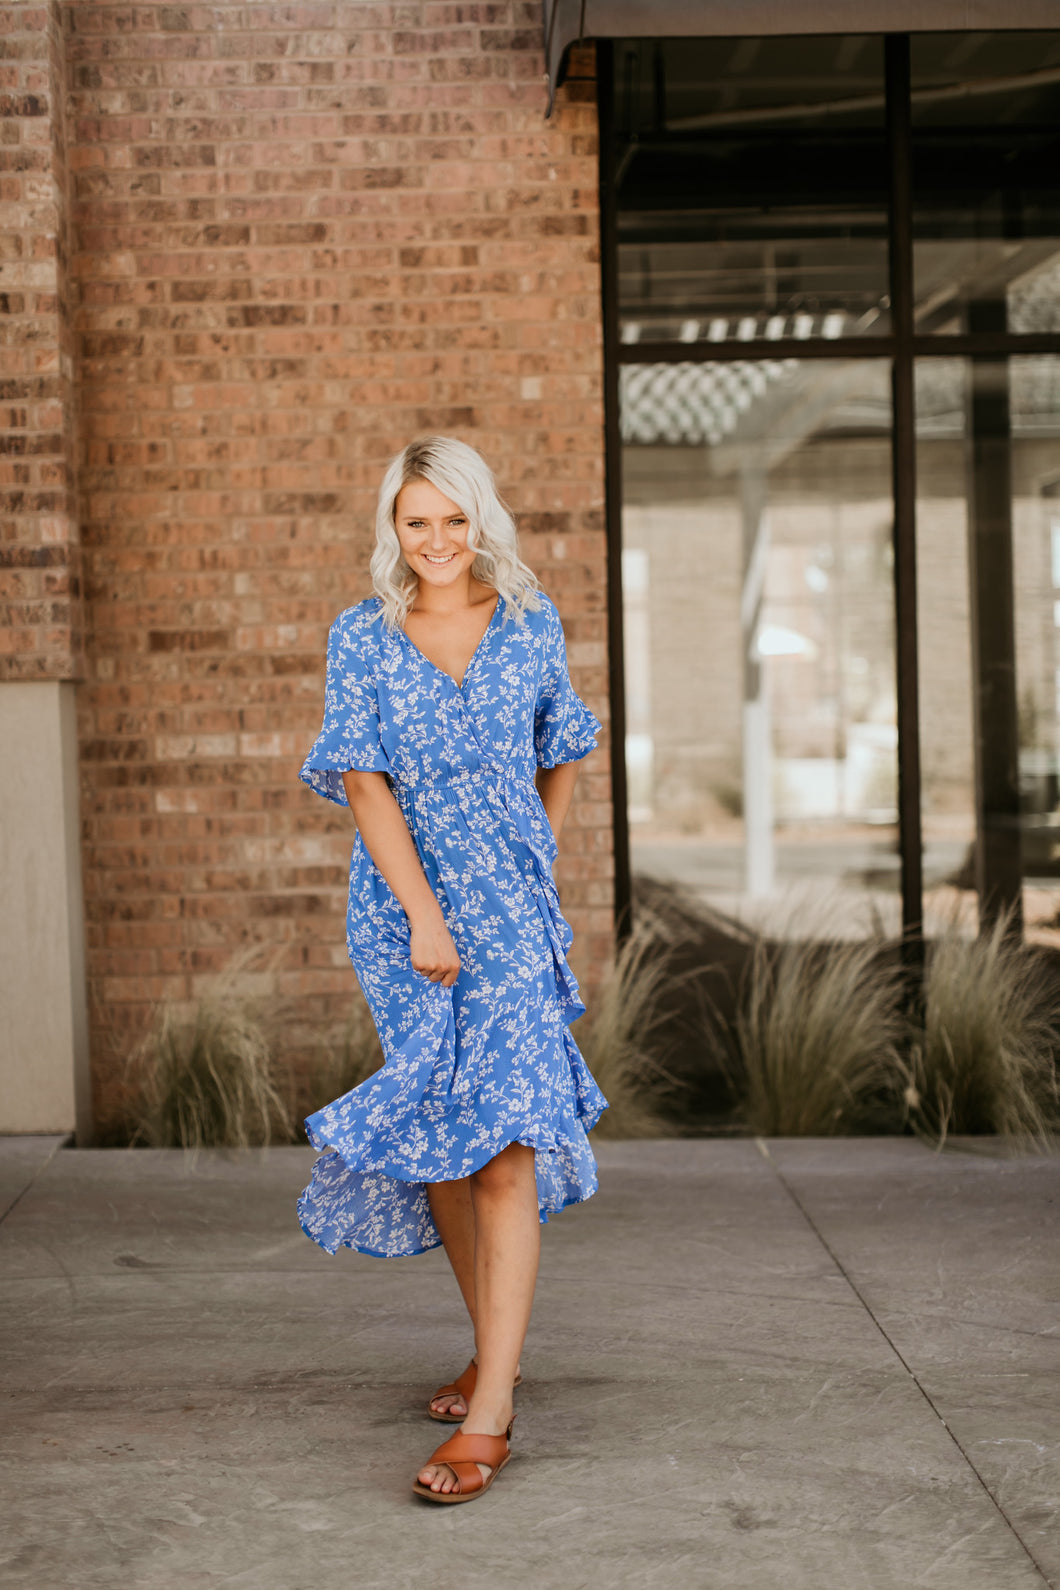 Seine Floral Dress in Blue